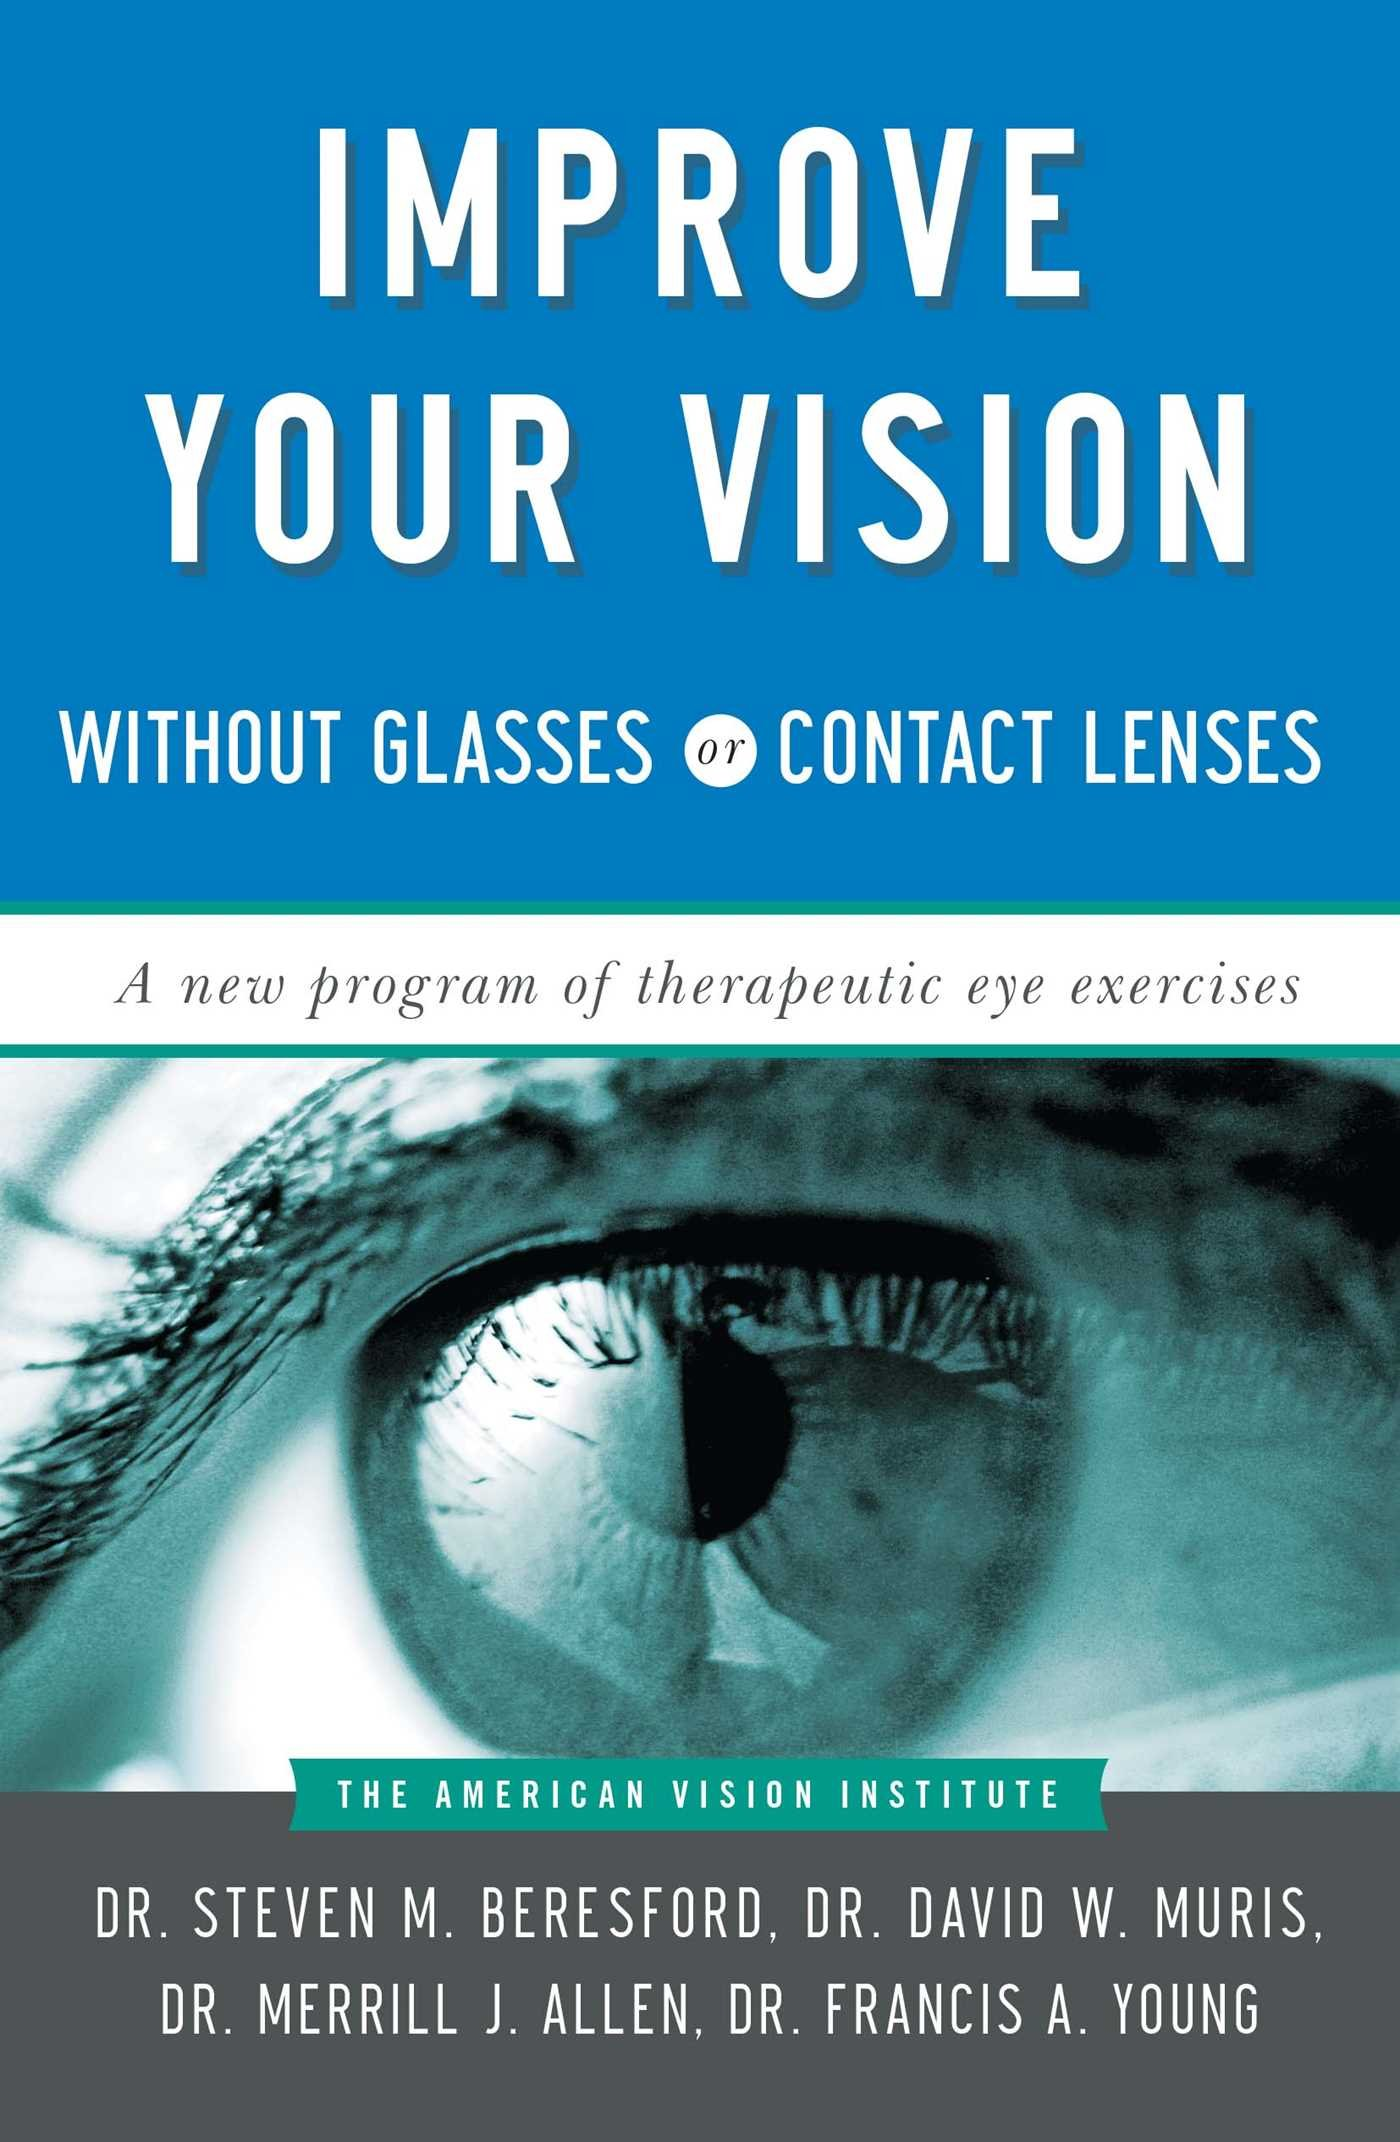 Improve Your Vision Without Glasses or Contact Lenses: Steven M. Beresford, David W. Muris, Merril J. Allen, Francis A. Young: 8601404743221: Amazon.com: ...